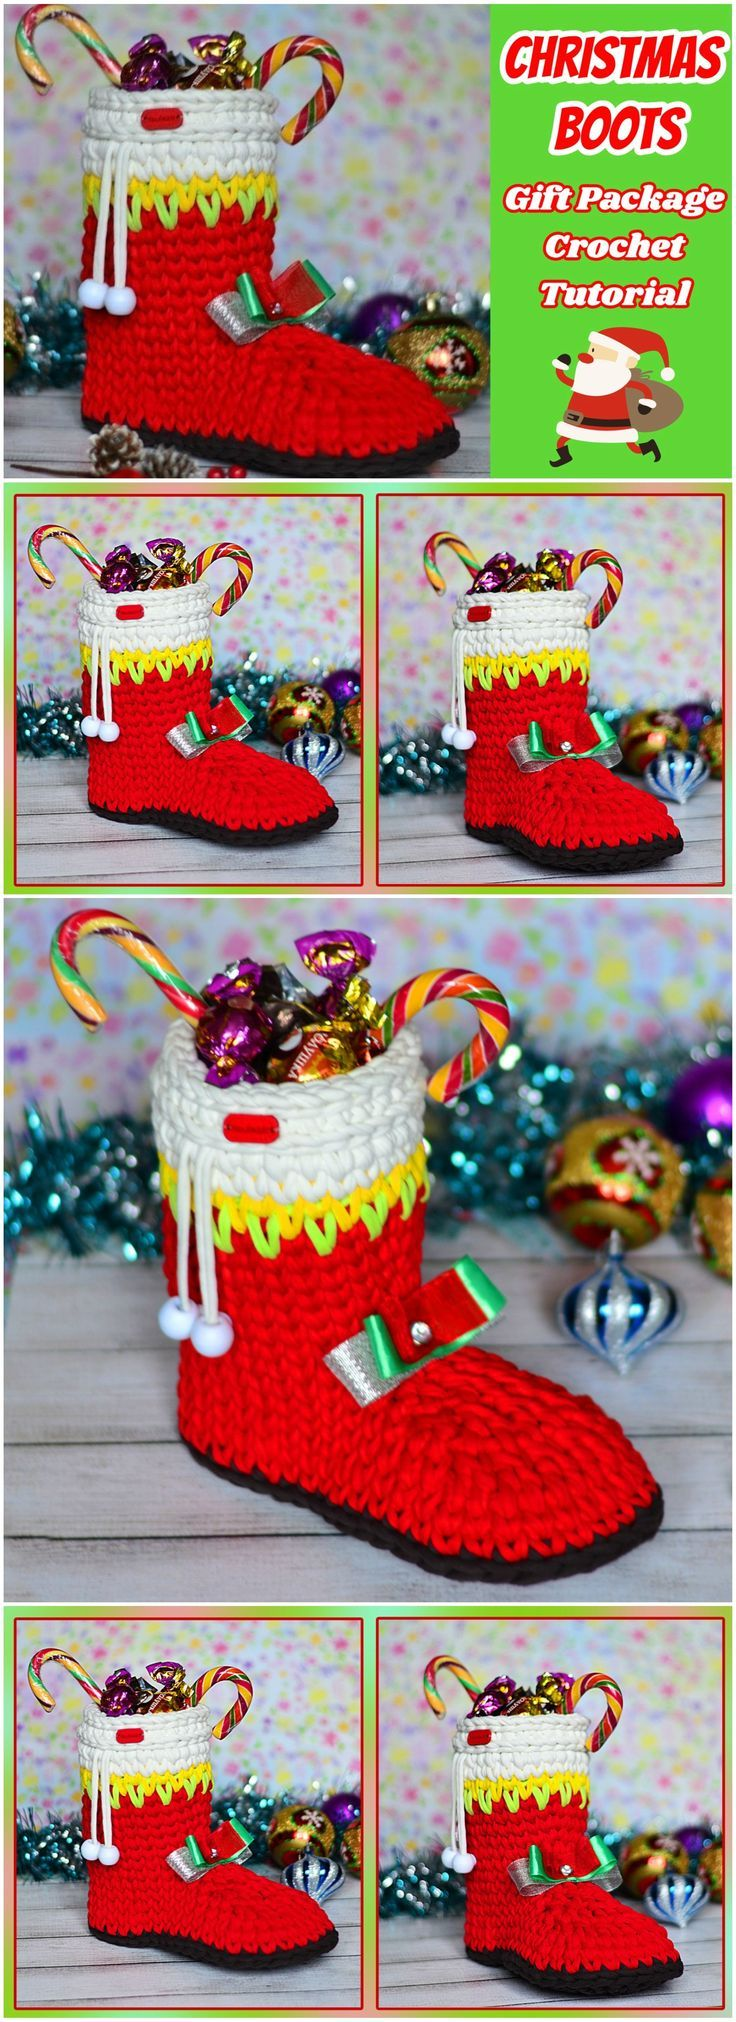 Crochet Christmas Boot Gift Package